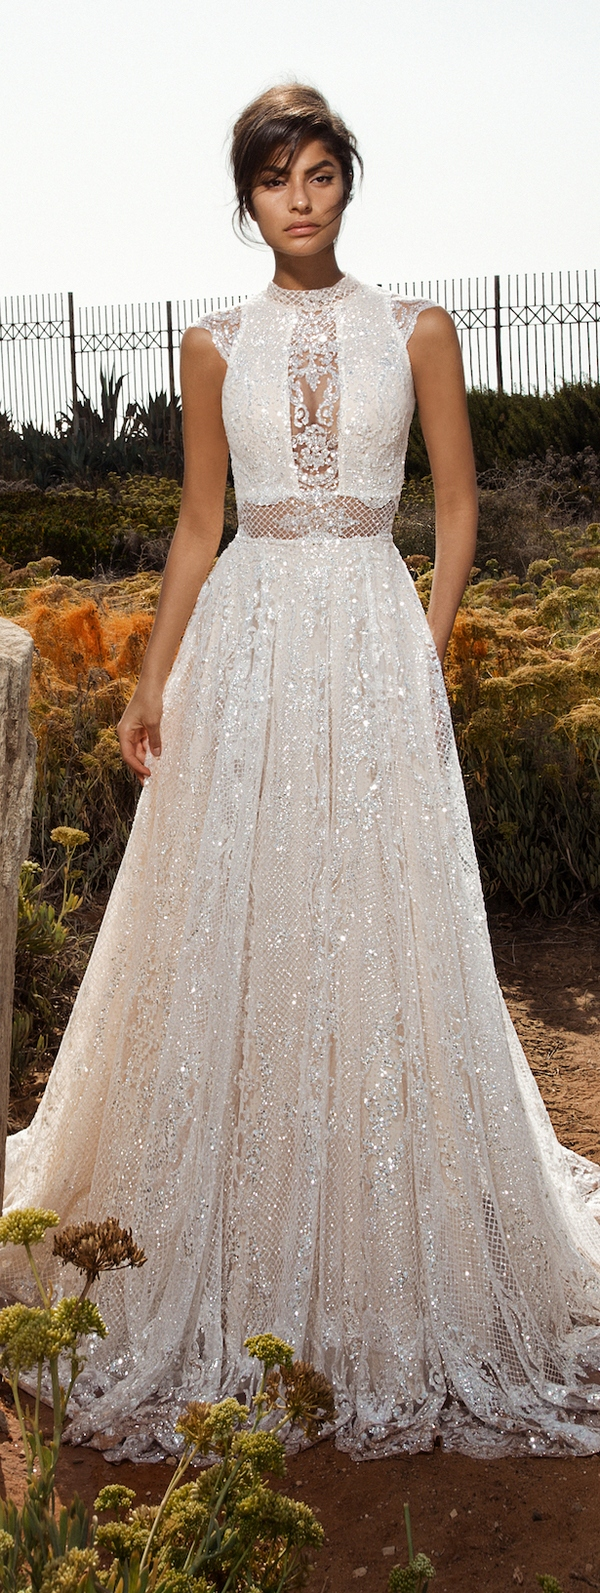 sparkling halter neckline border sleeve wedding dress with an illusion neckline and a sparkling textural skirt